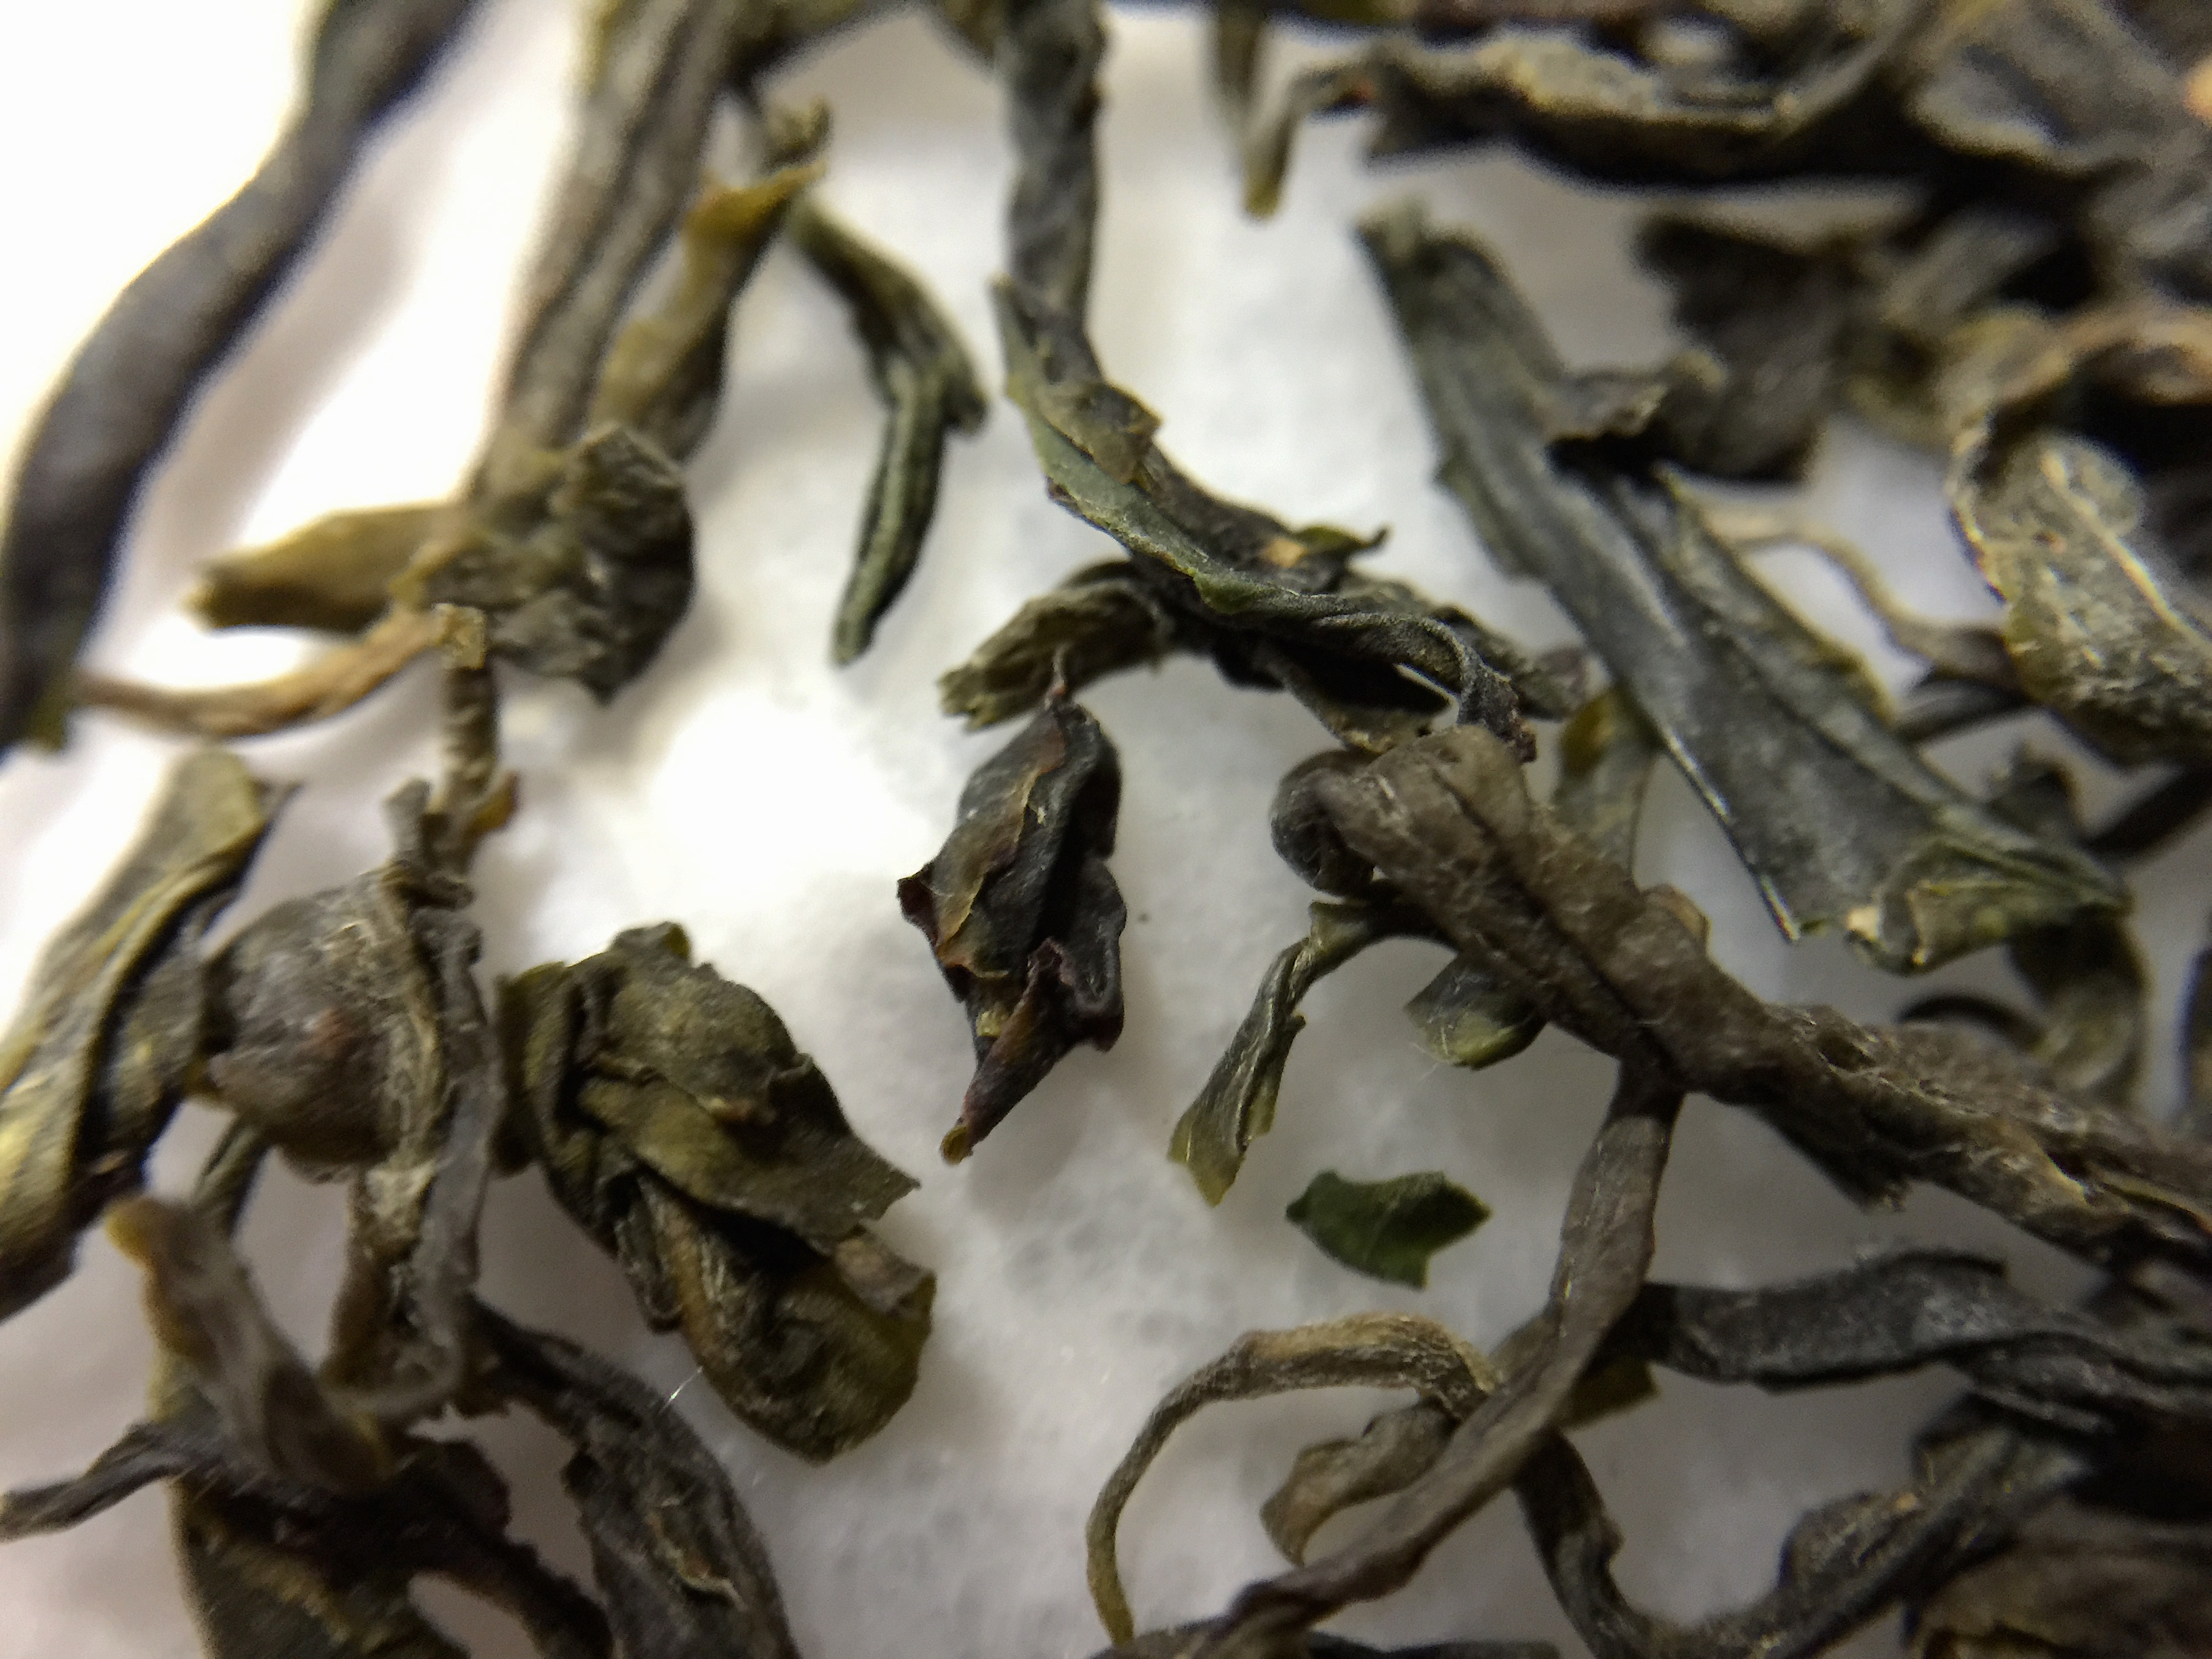 Five Peaks Green Dew (Arrbor Teas): loose leaf Macro by Jocilyn Mors is licensed under a Creative Commons Attribution-ShareAlike 4.0 International License.